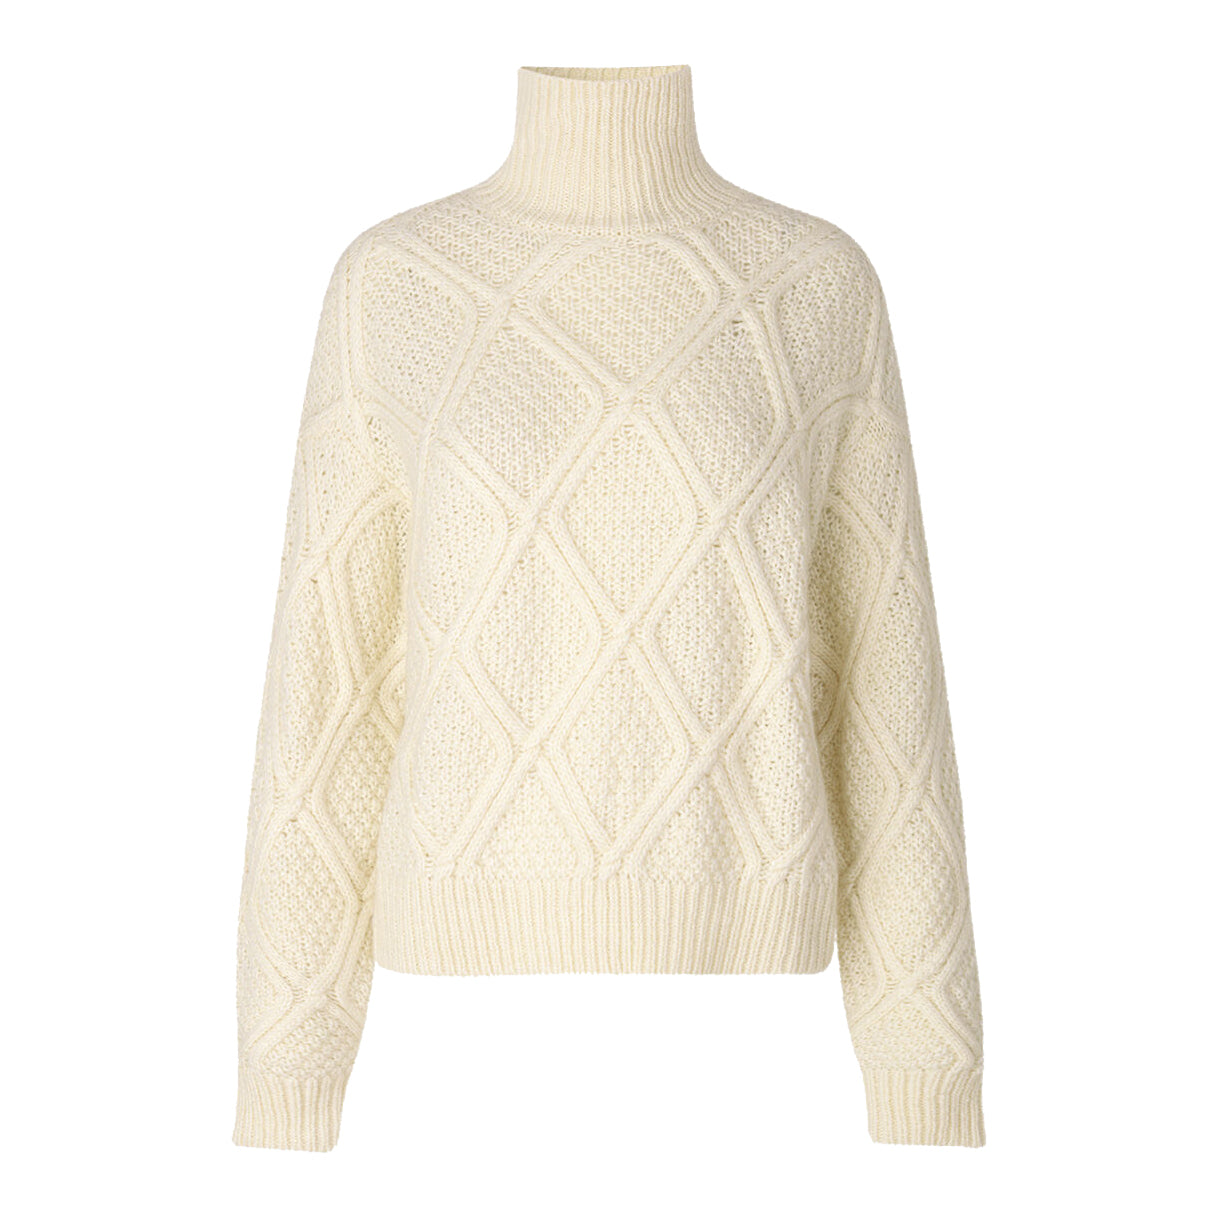 Samsoe Samsoe Bennie Turtleneck 11142, White